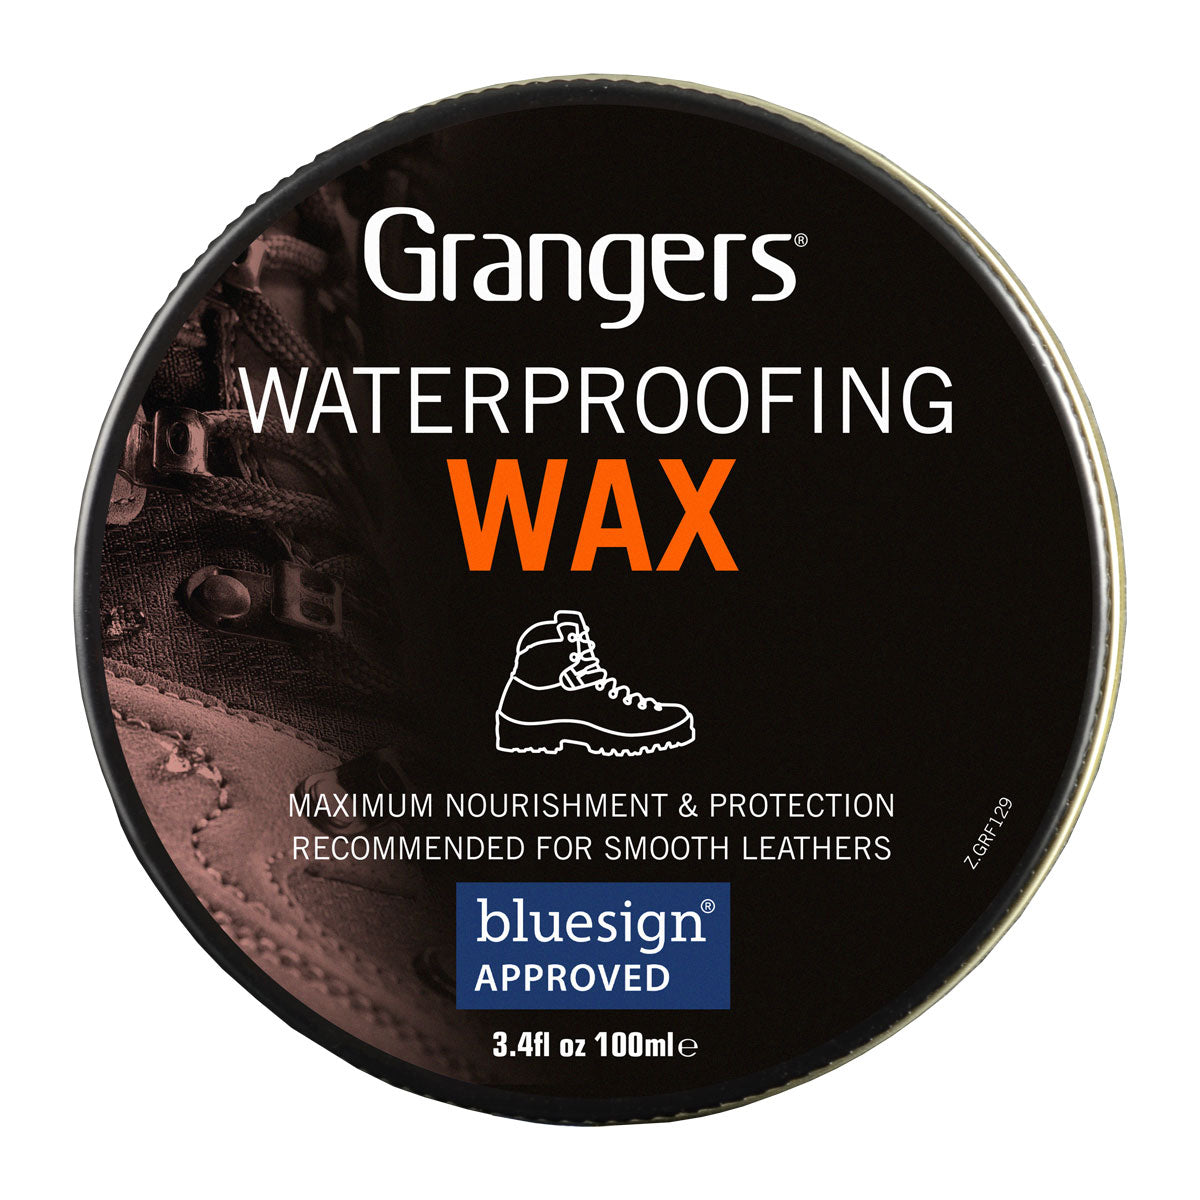 Waterproofing Wax